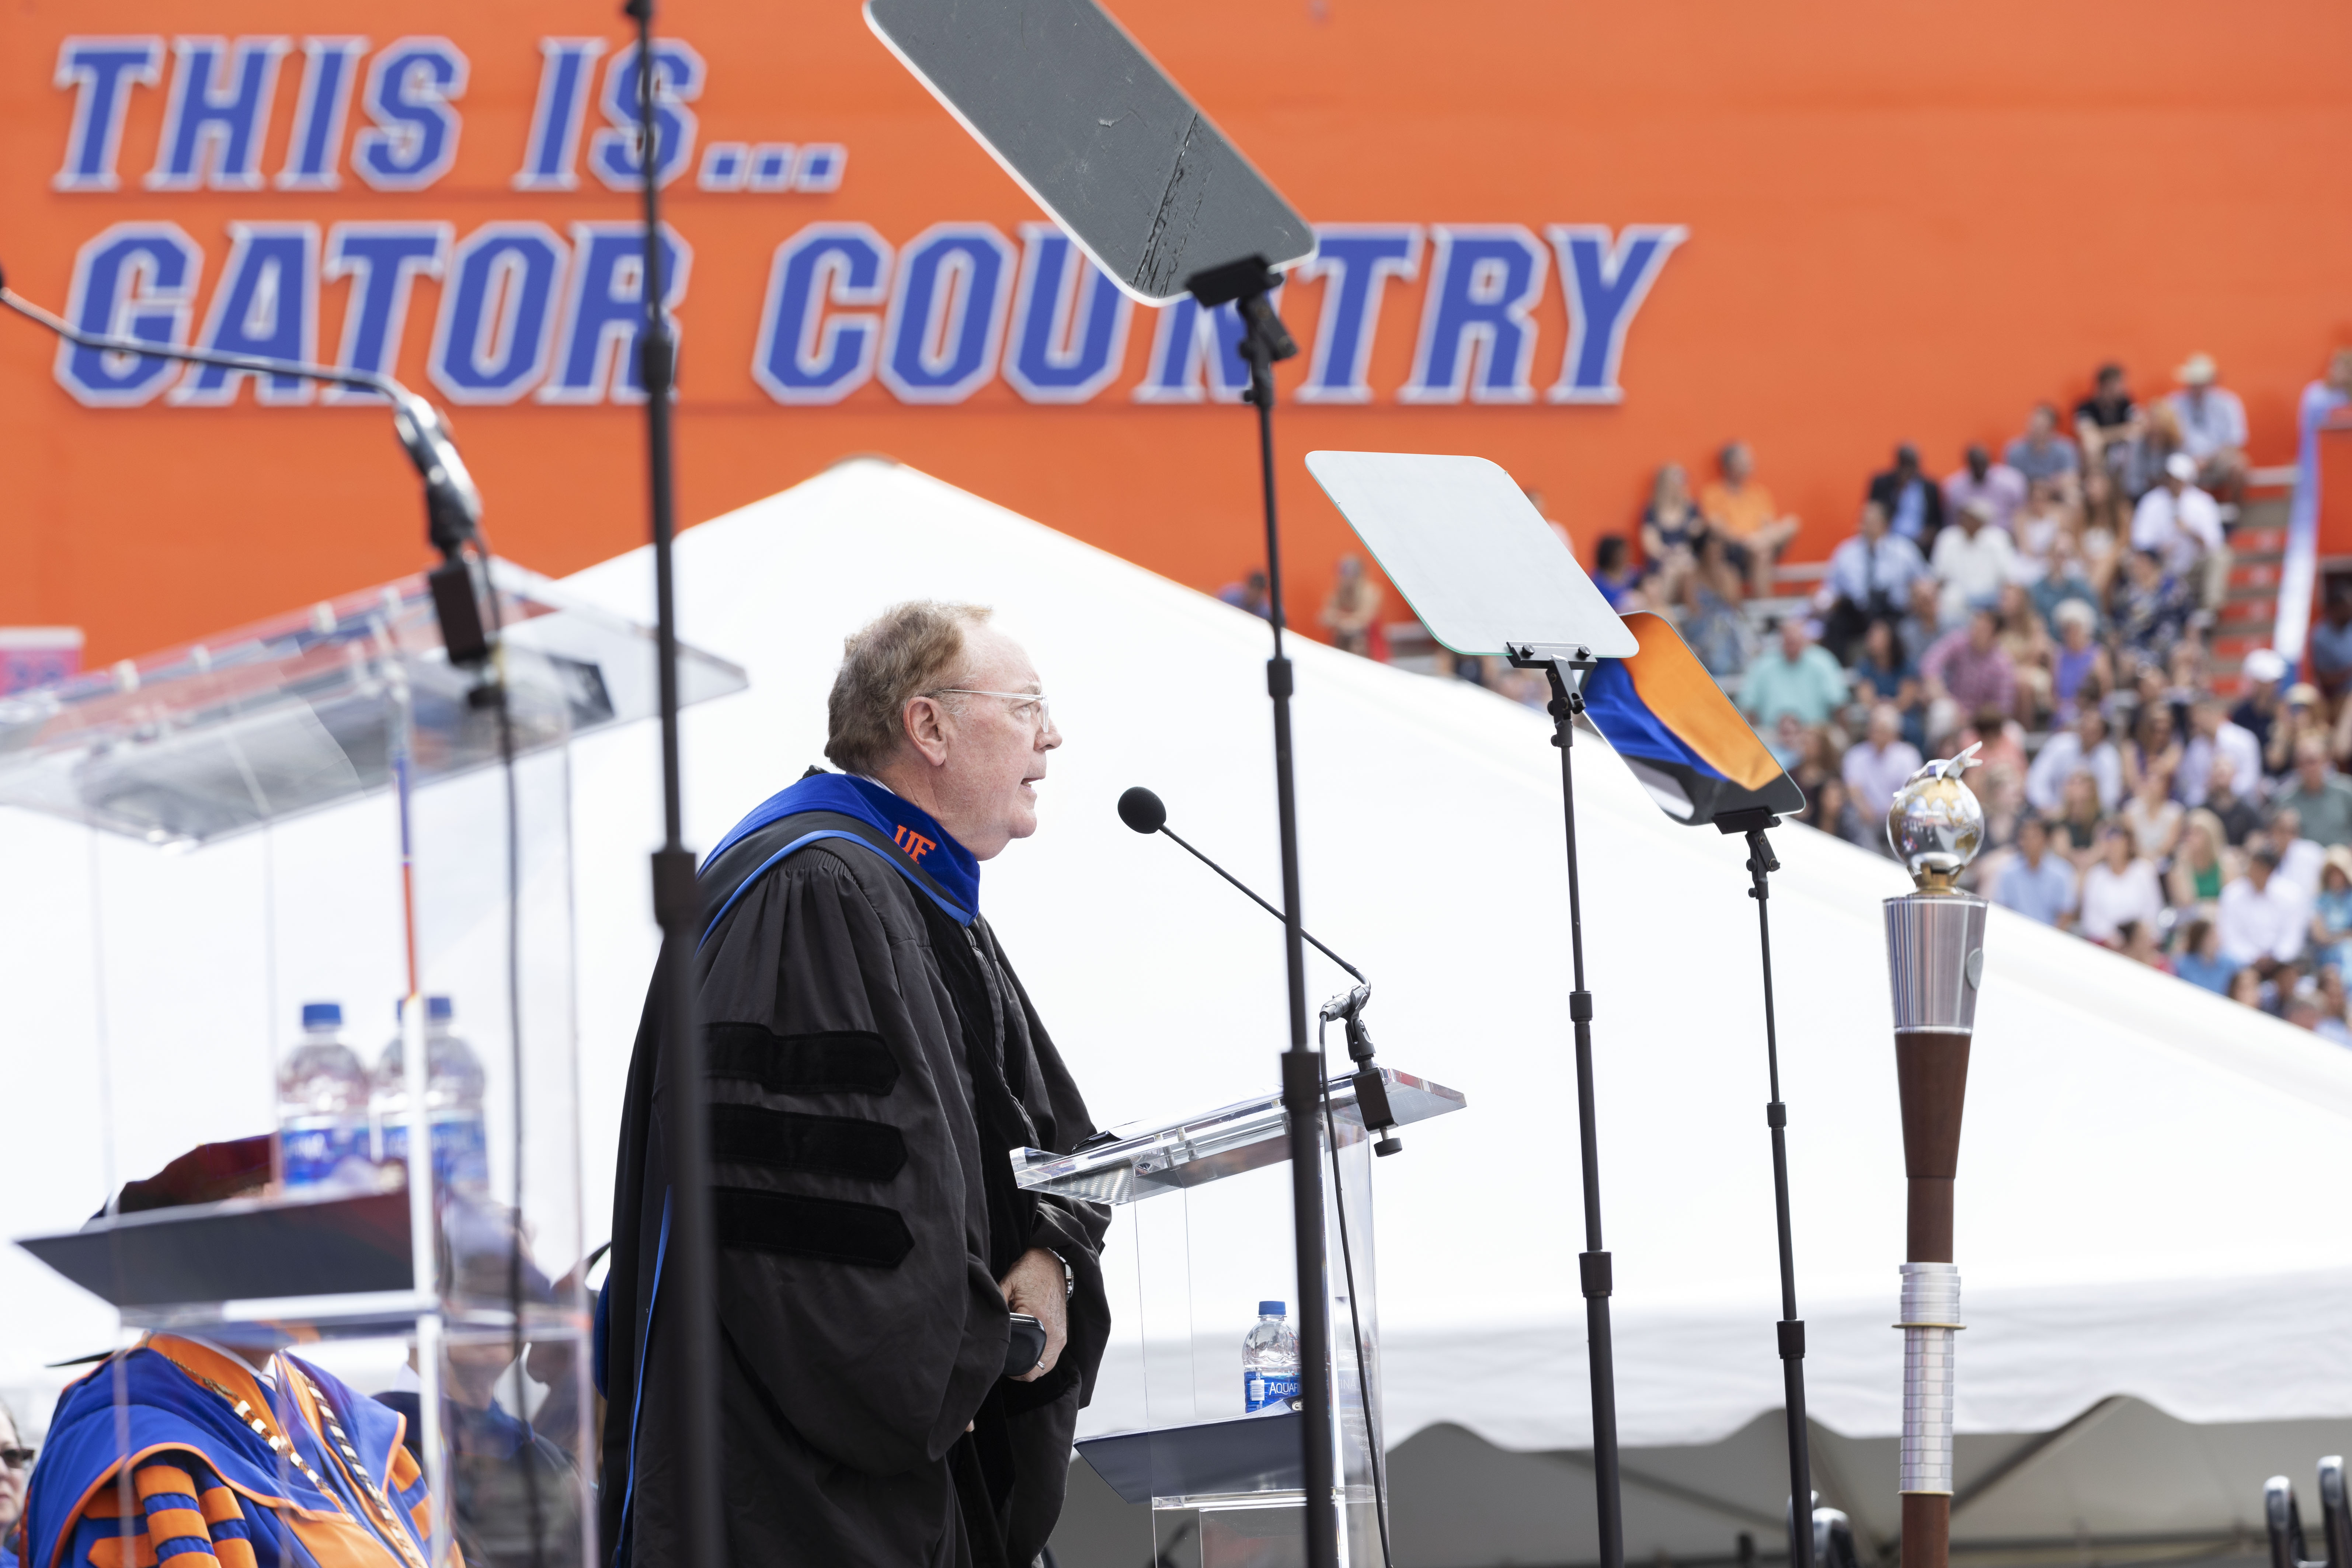 Guest commencement speaker James Patterson's speech for university wide ceremony